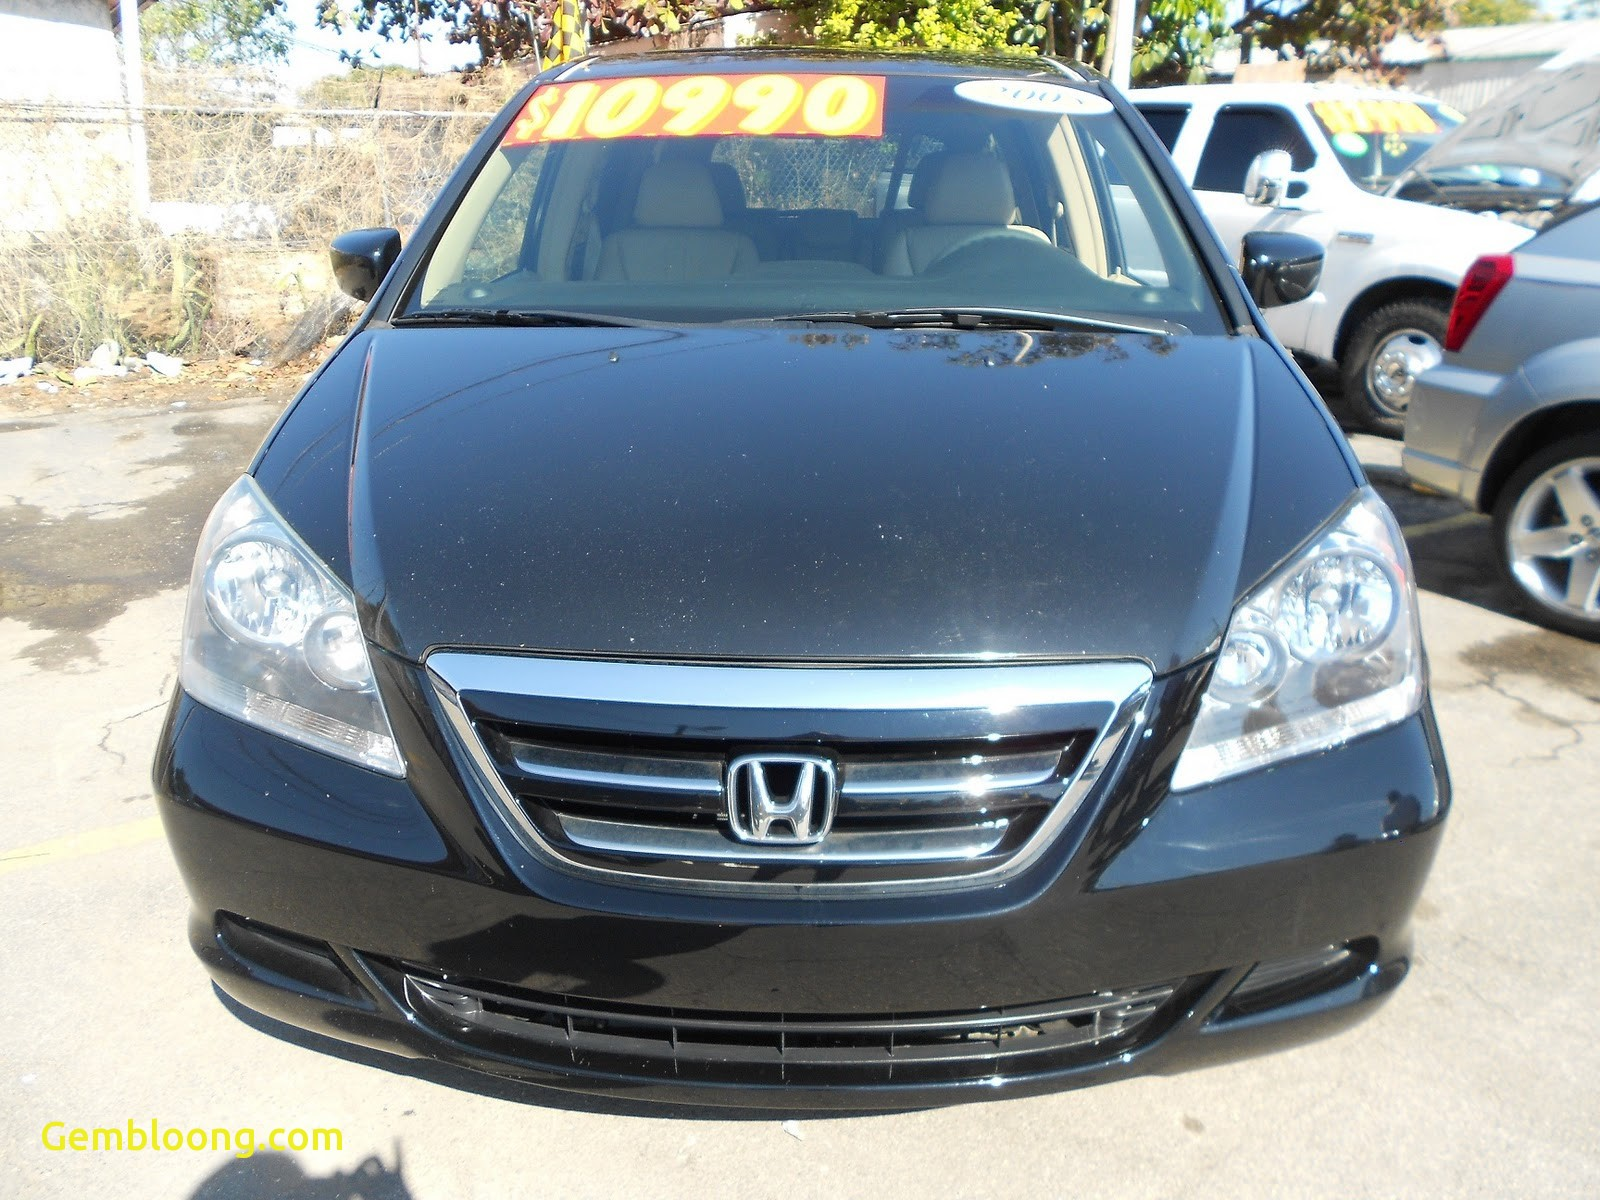 Cheap Used Suvs for Sale Inspirational Beautiful Used Hondas for Sale Near Me